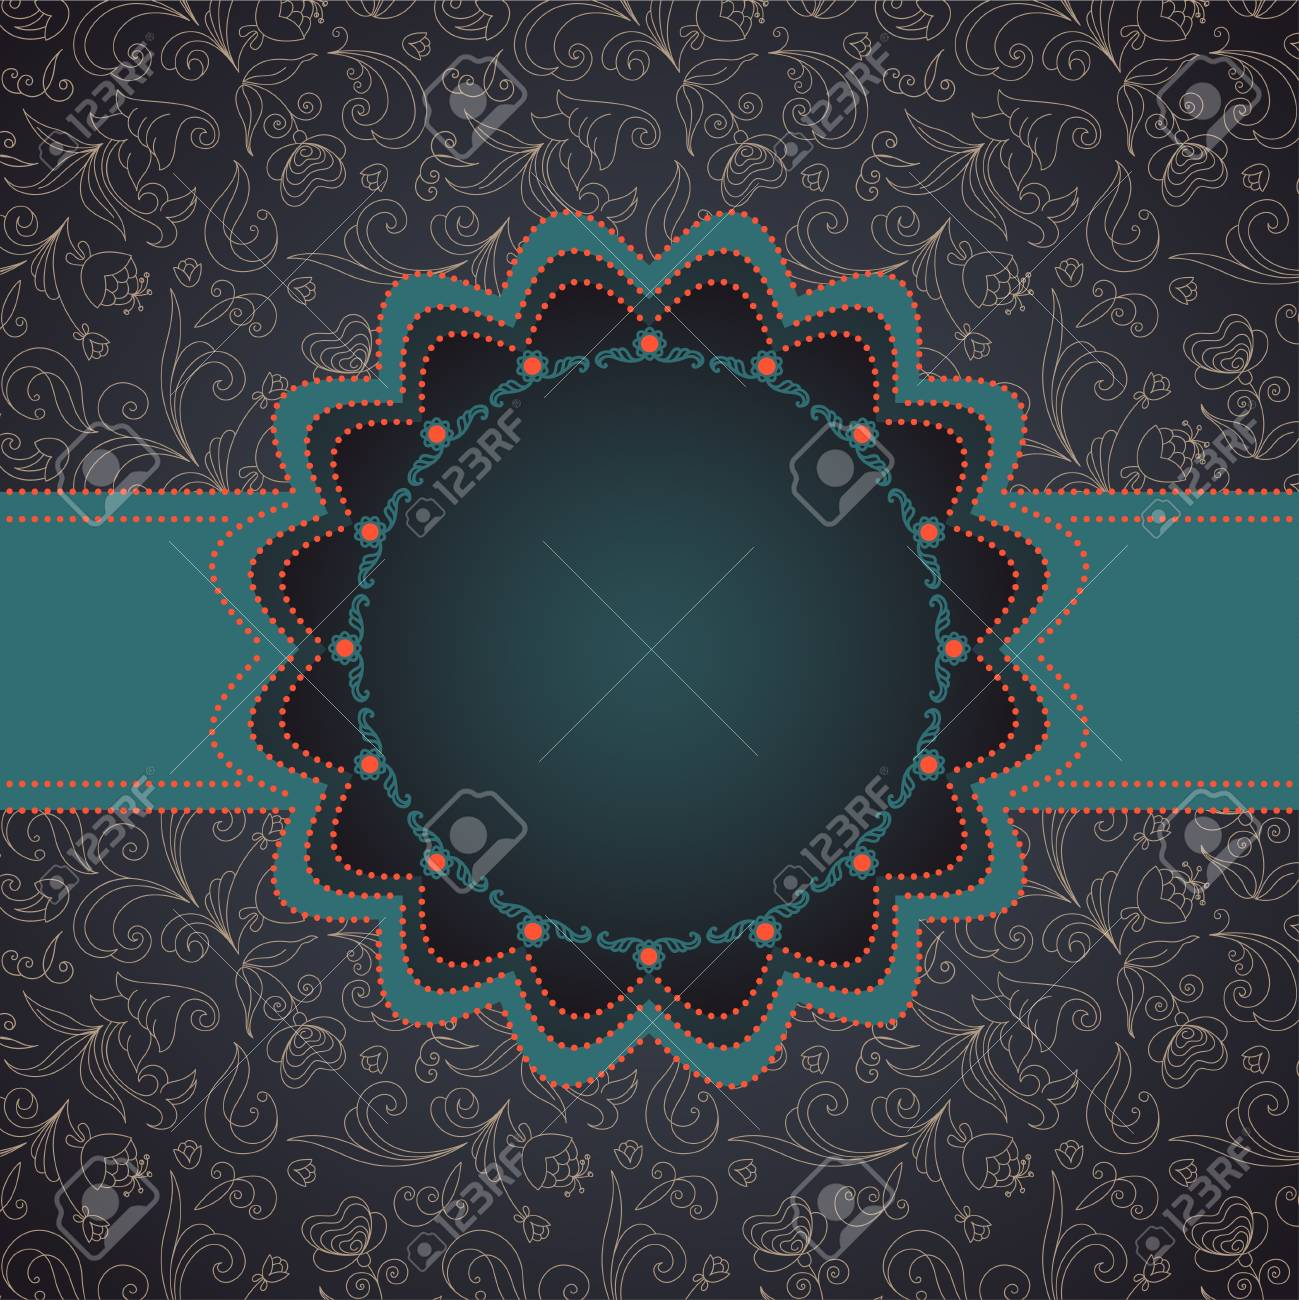 Greeting card in grunge or retro style. Stock Vector - 14086723